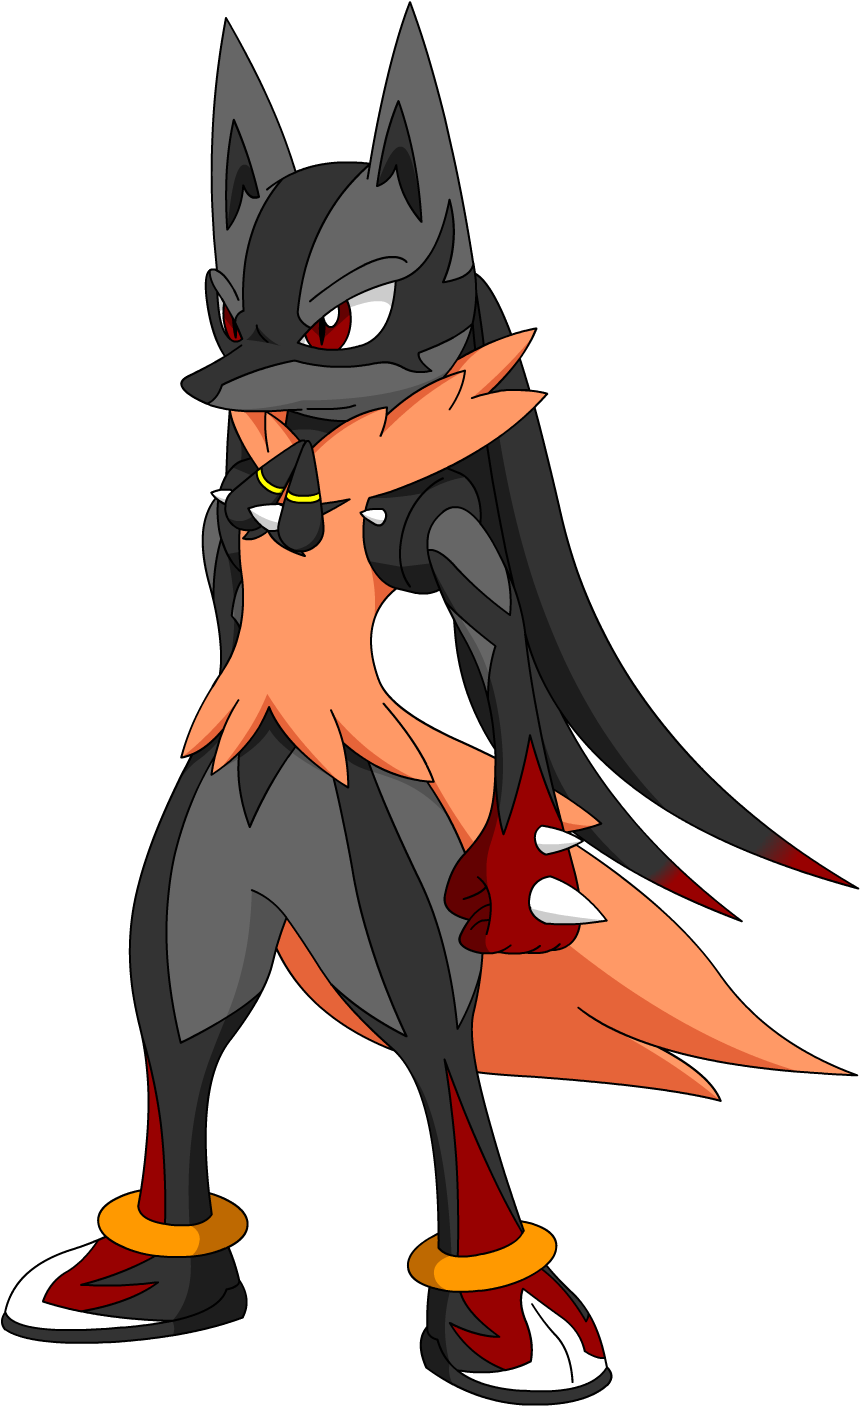 Mega Hypon Lucario by LucarioShirona on DeviantArt